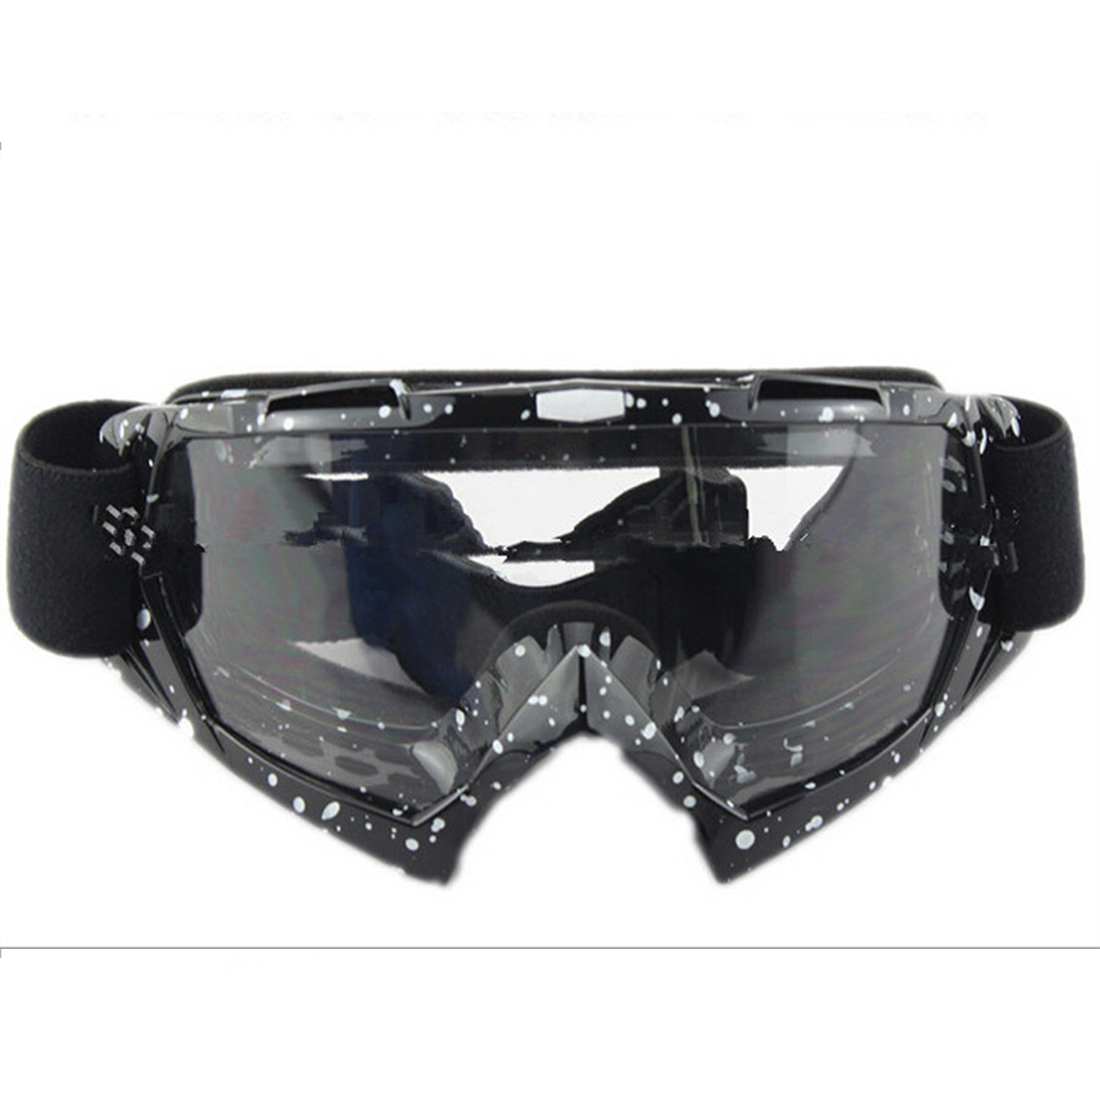 Snow Ski Snowboard Goggles Anti-Fog Eye Protection Black and White Lucency - $19.99